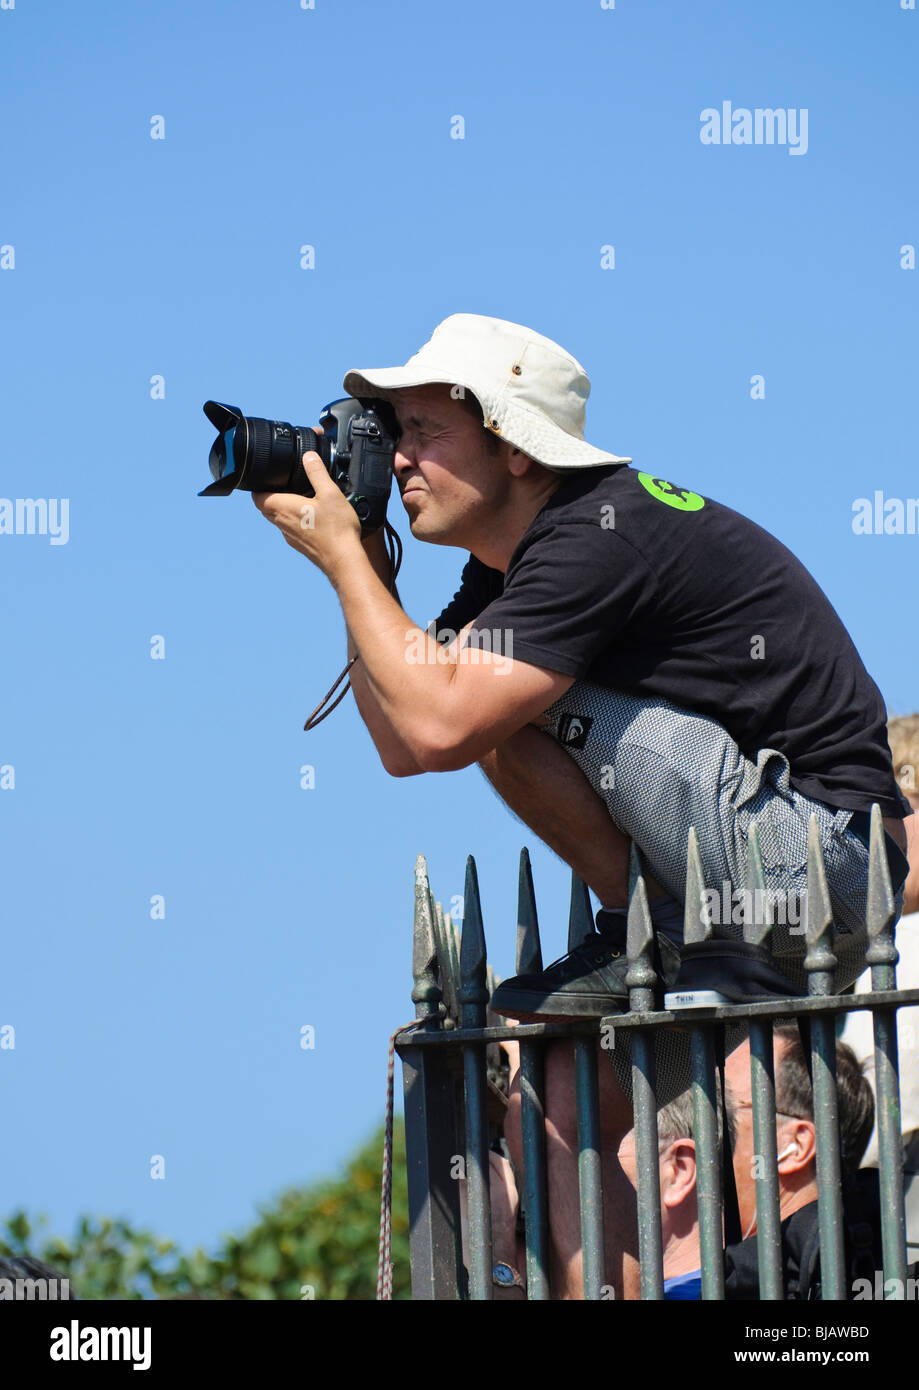 Photographers often take great risks to get the right angle on their subject ... - Stock Image